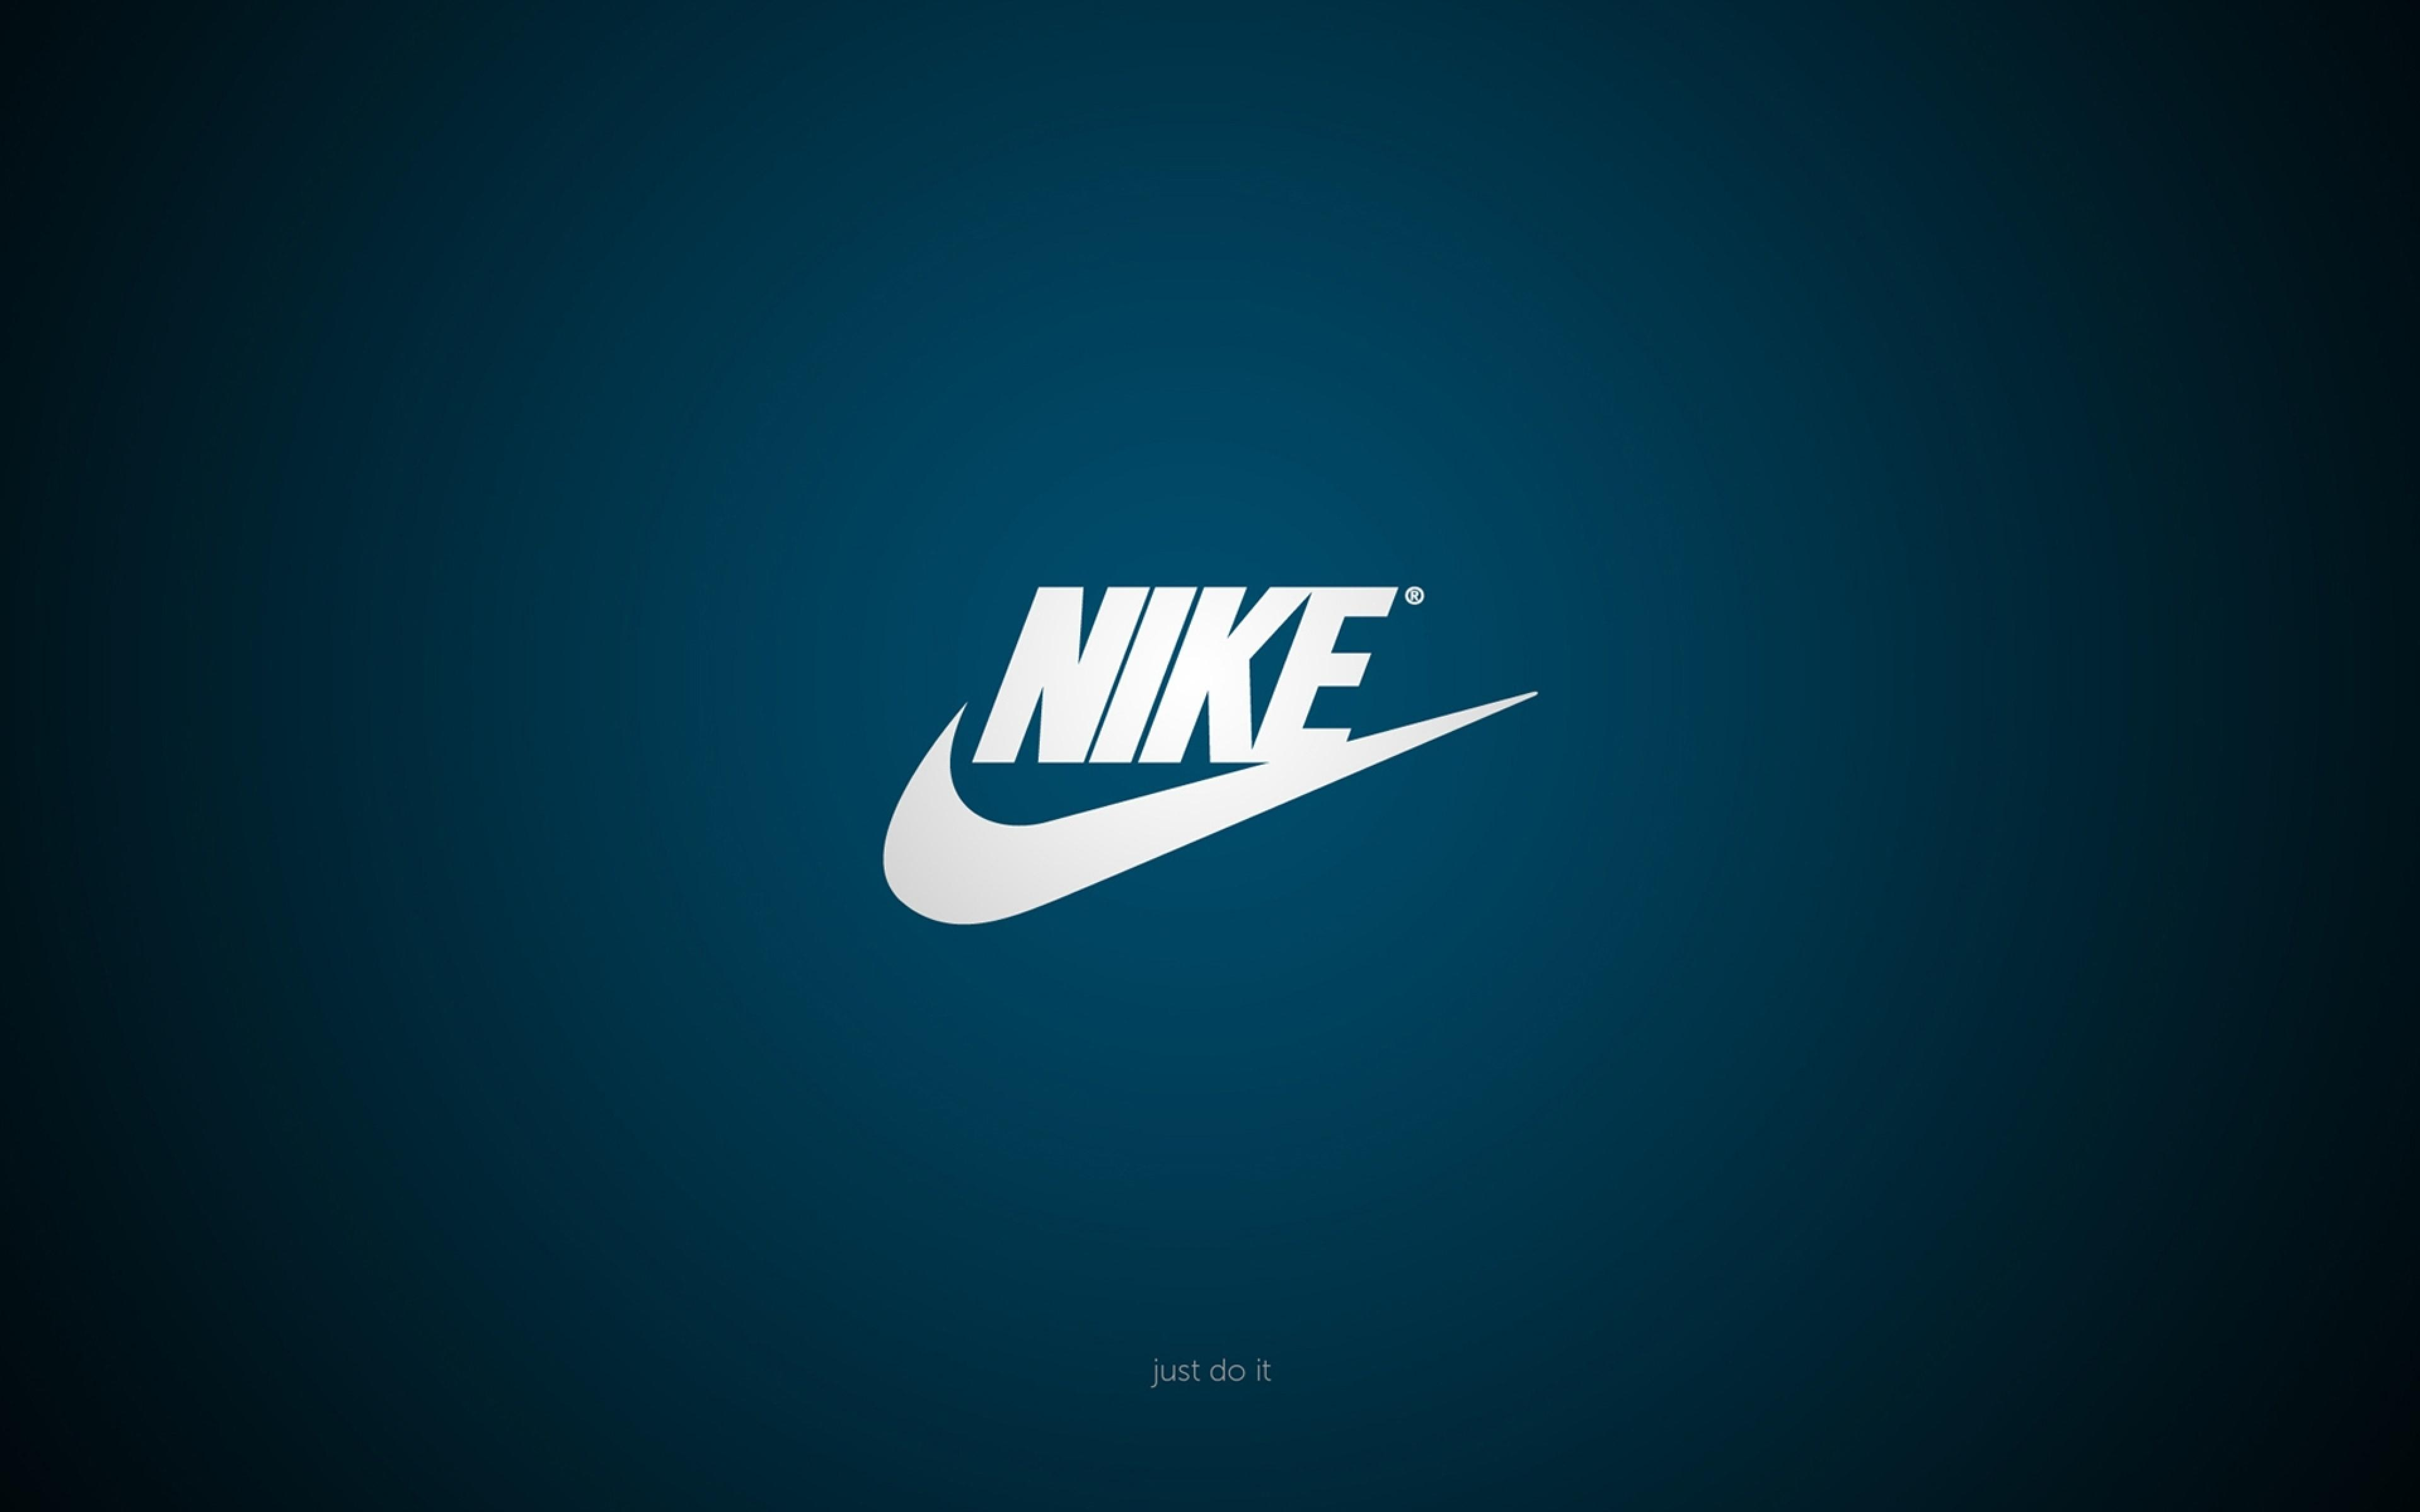 Download HD Nike Wallpapers Logo With Minimalism Slogan Just Do It